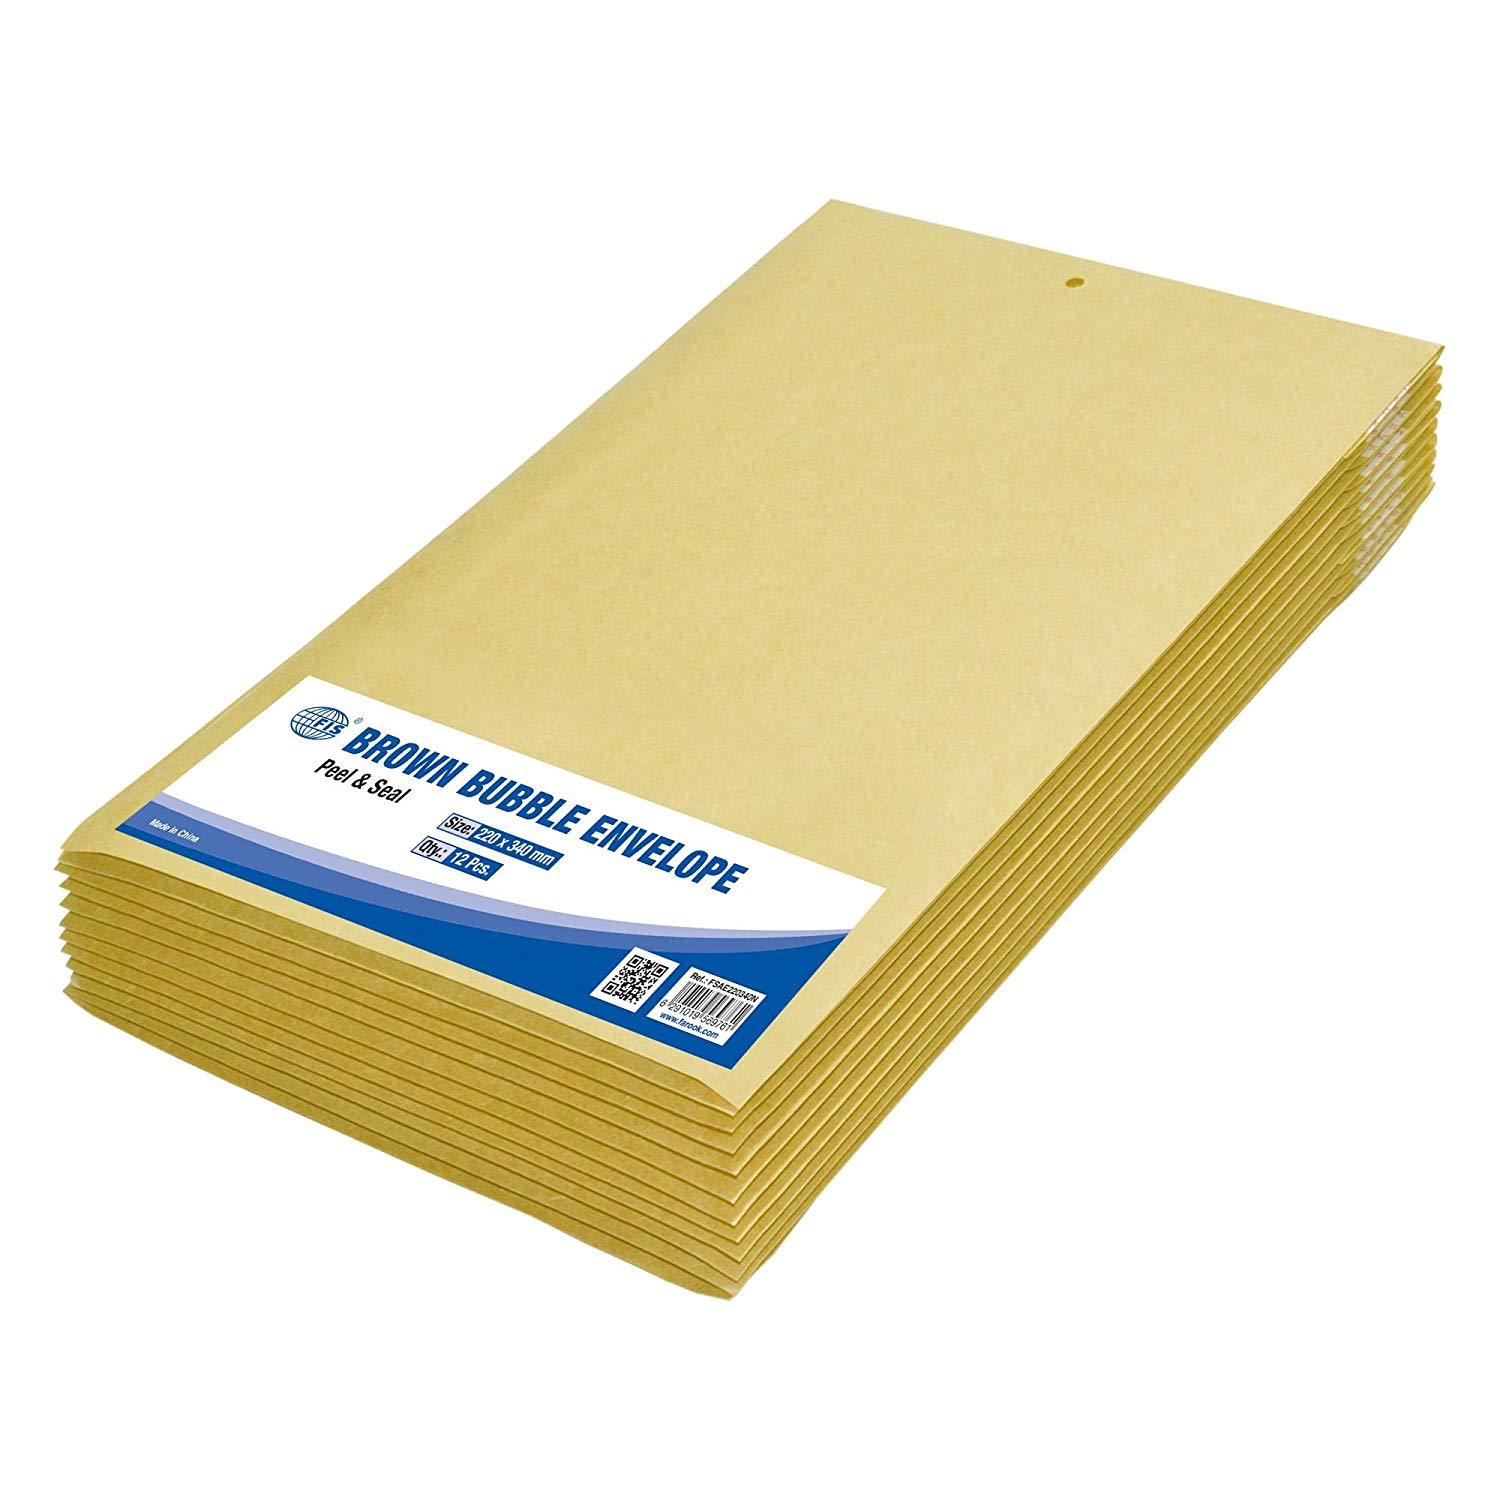 FIS Peel and Seal Bubble Envelopes 220 x 340mm FSAE220340N - Brown (pkt/12pcs)